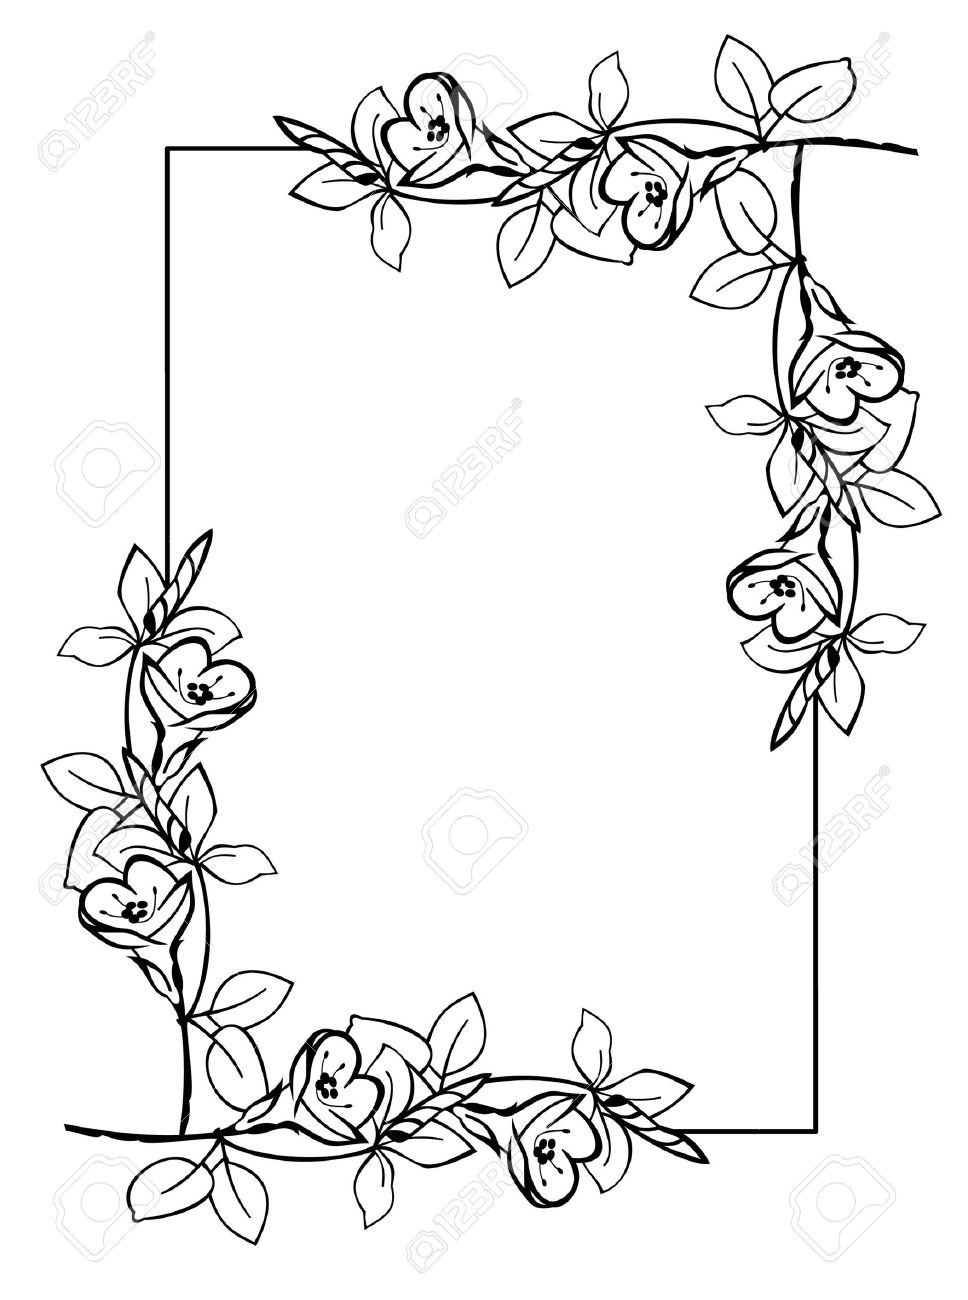 968x1300 Flowers Drawings With Border Silhouette Frame With Flowers Royalty